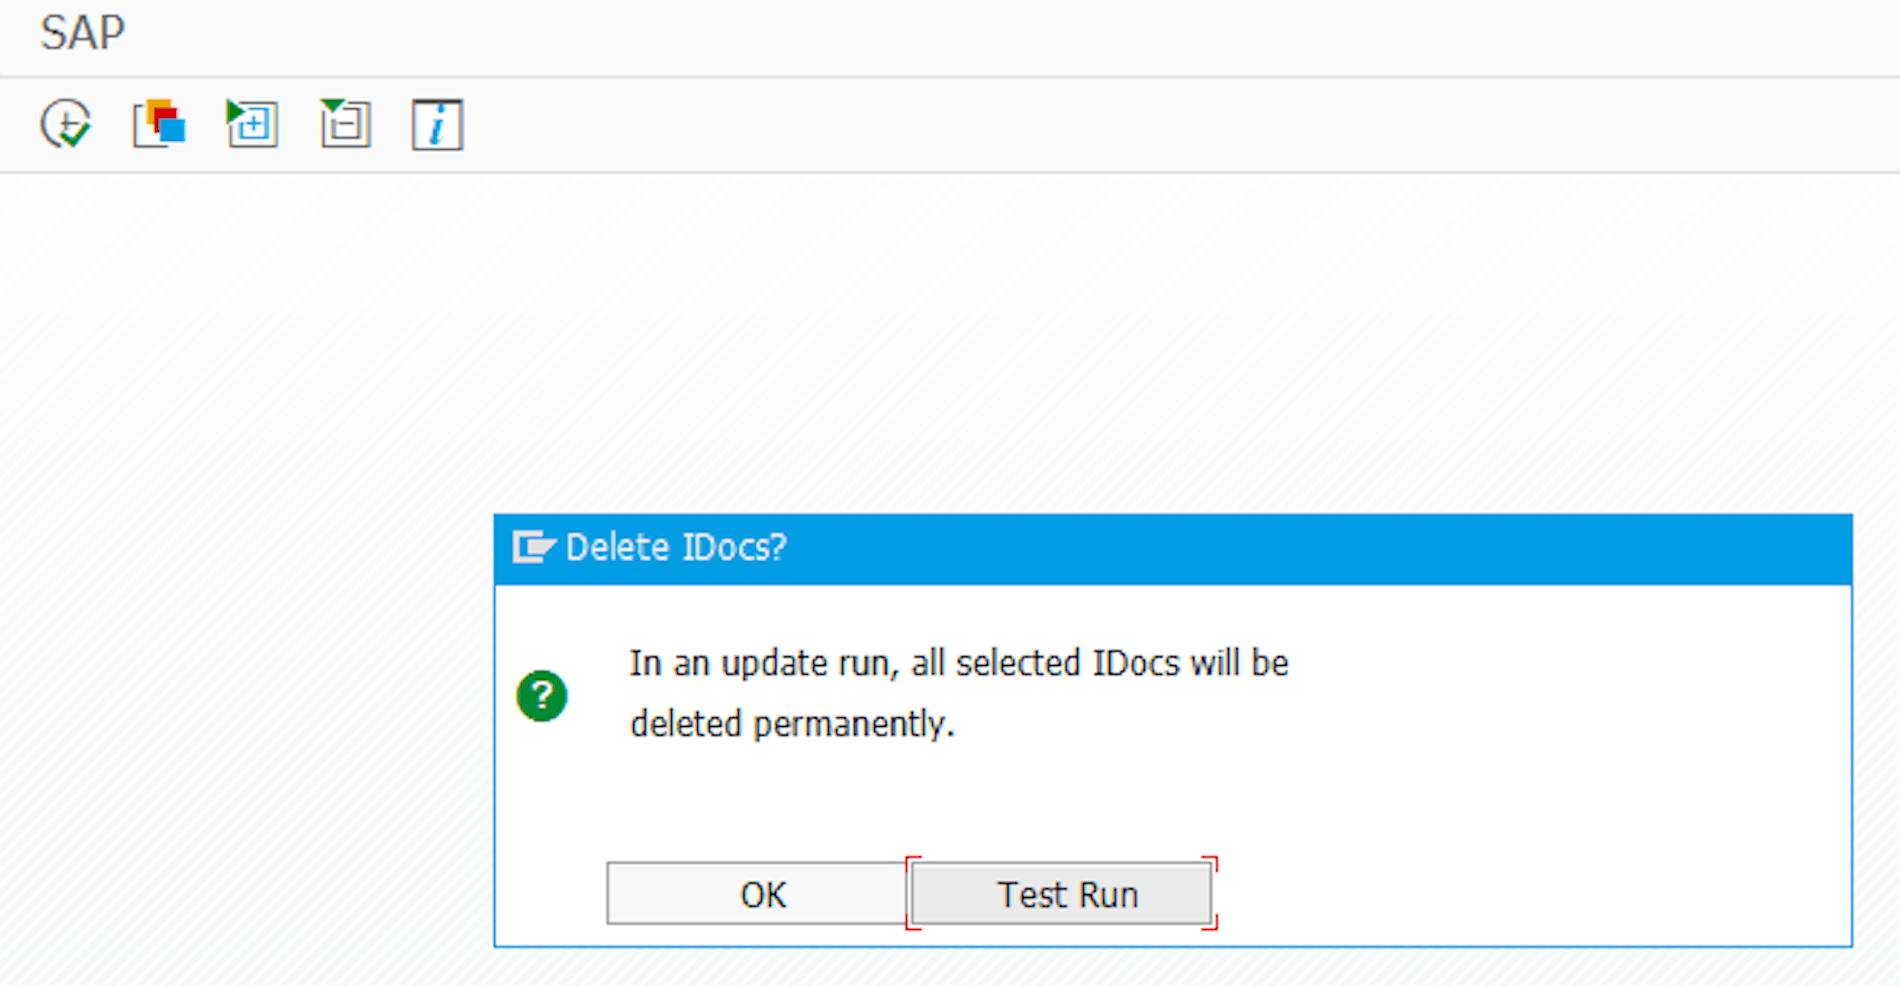 Confirmation Prompt in Transaction WE11 when Deleting IDocs